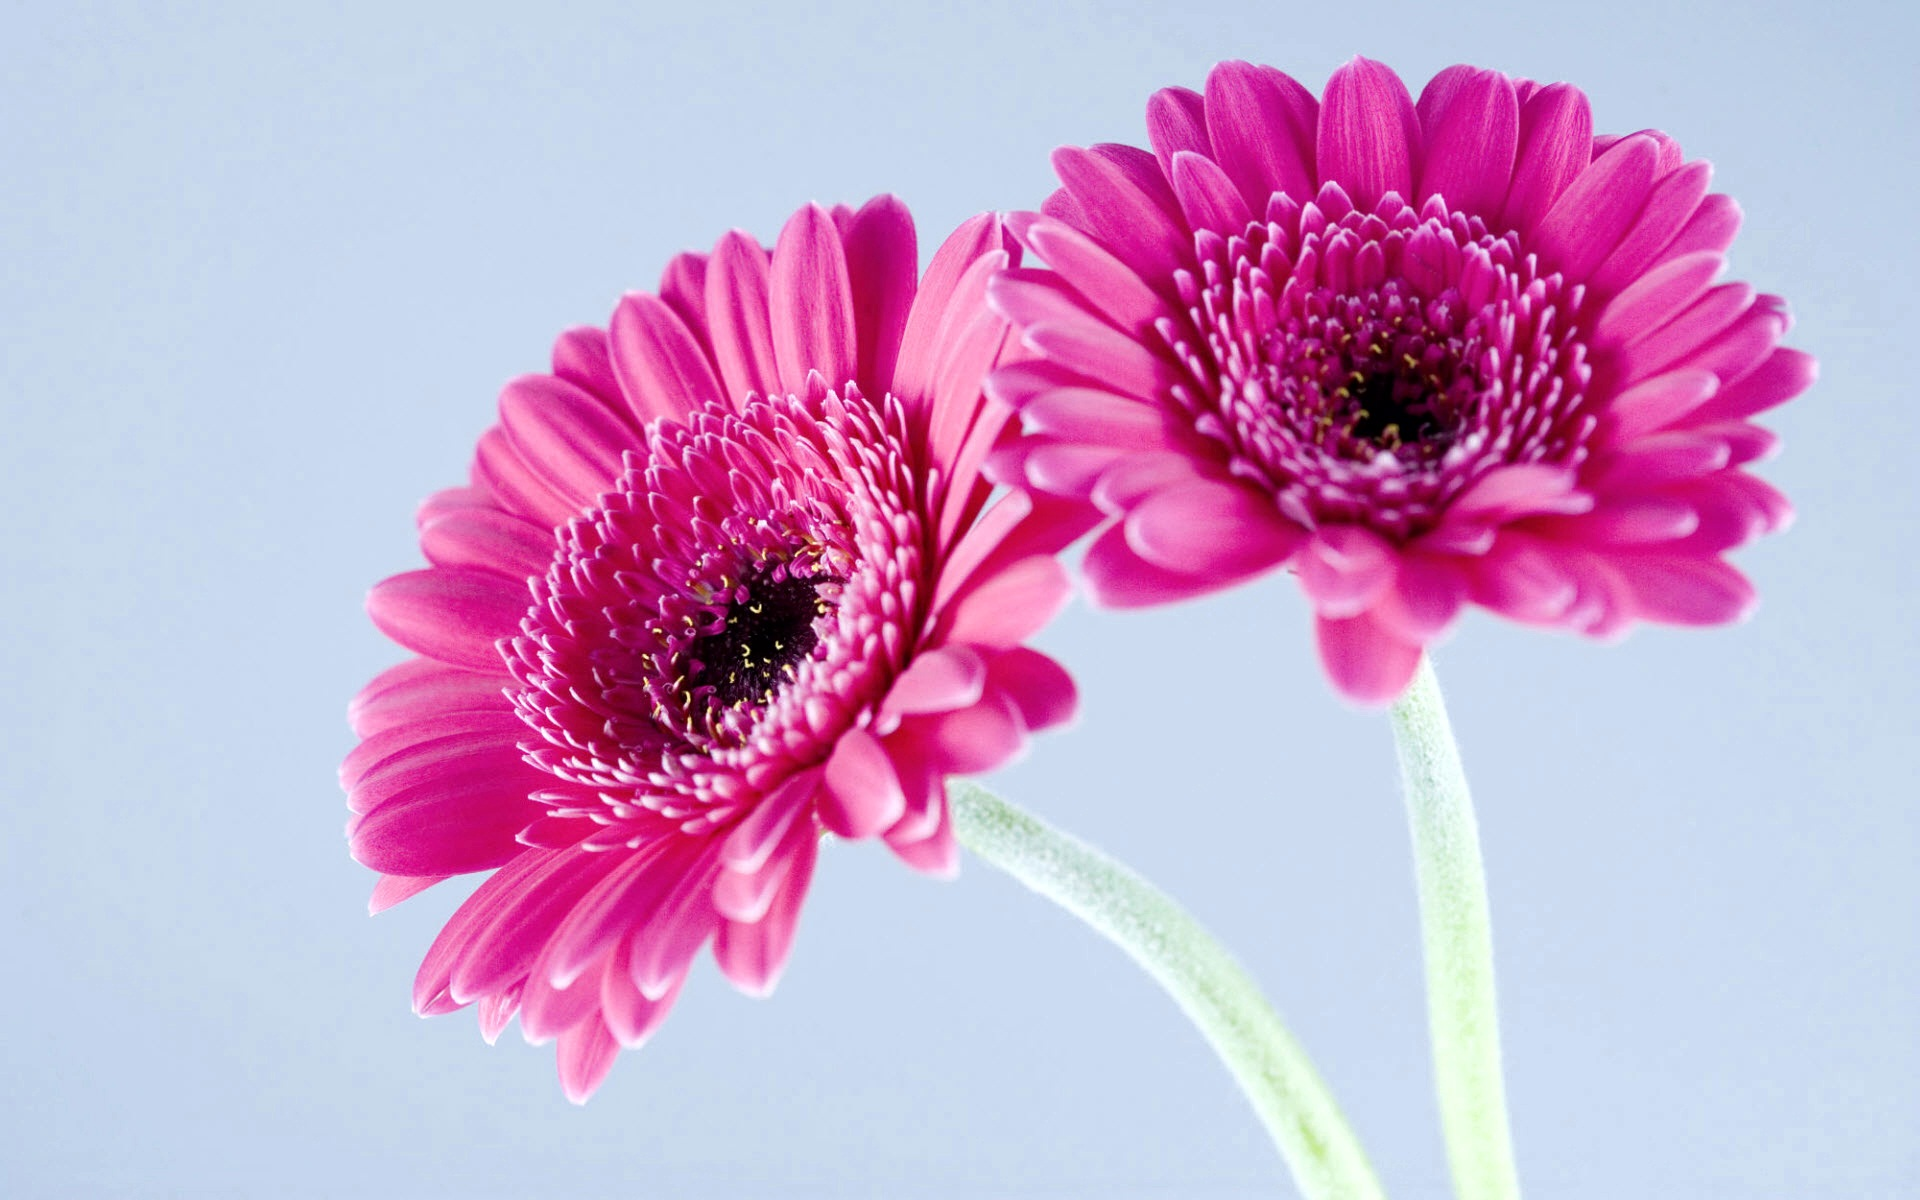 Purple Gerbera Daisies 132.63 Kb